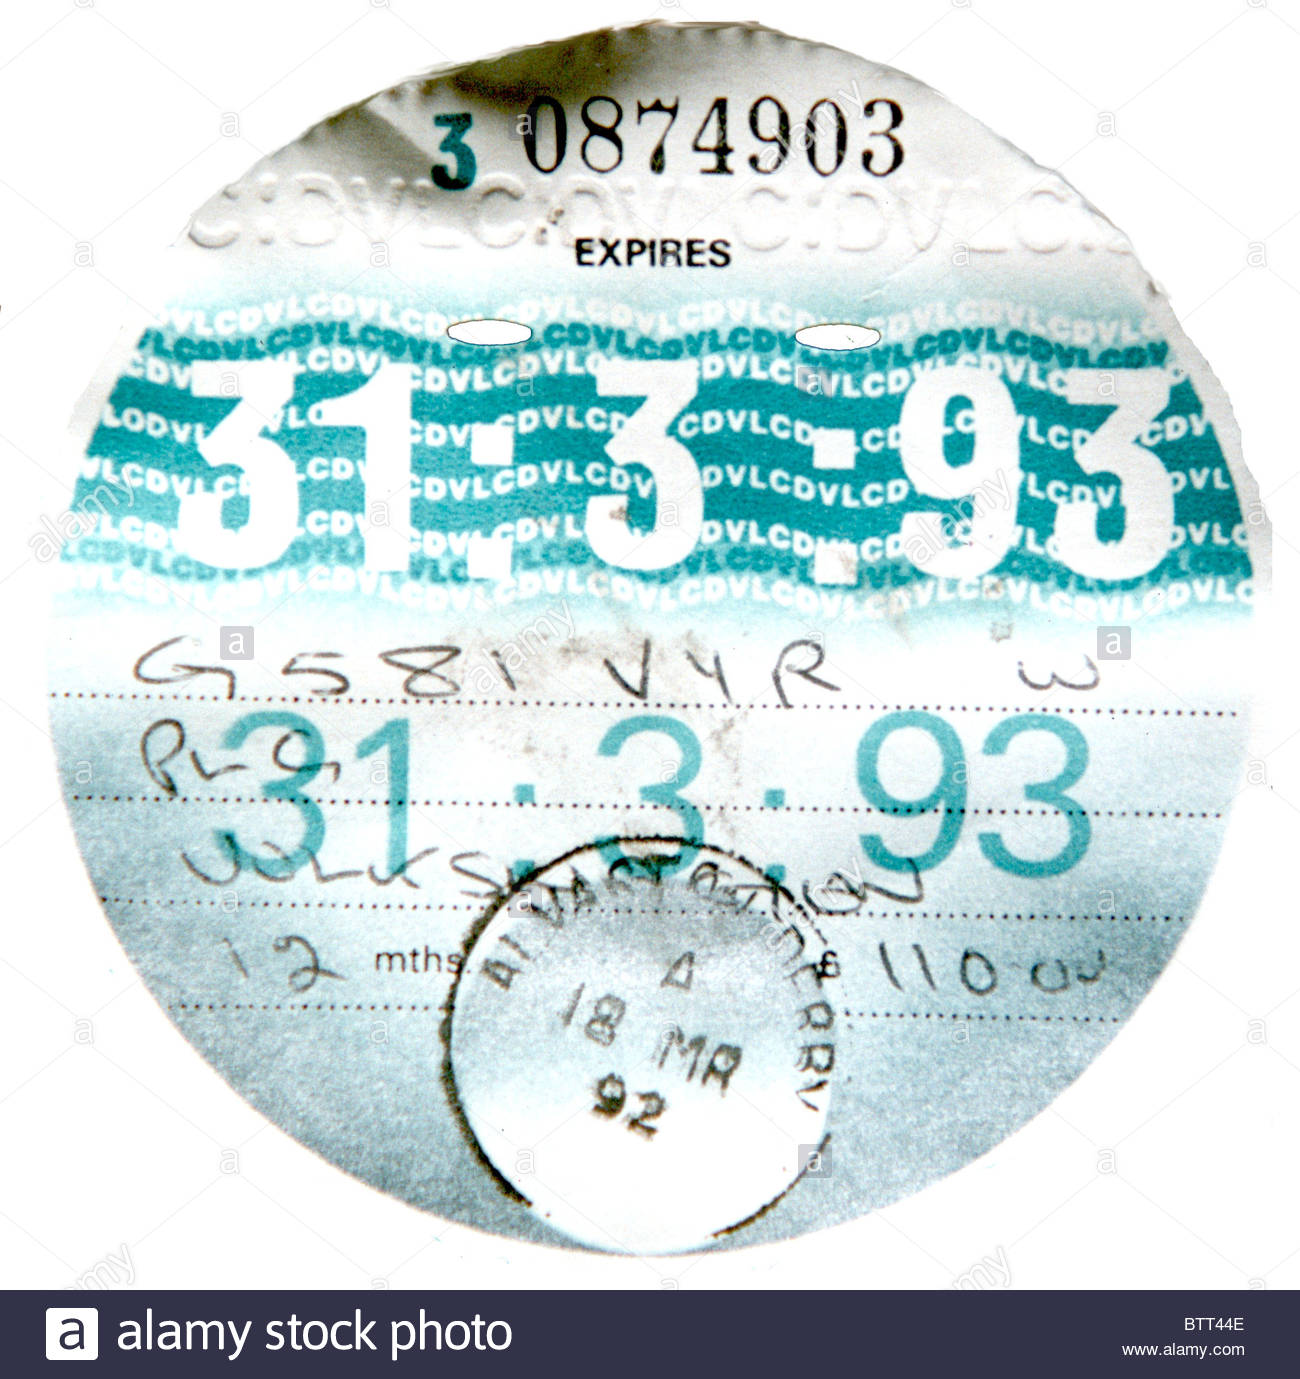 Check road tax expiry date online